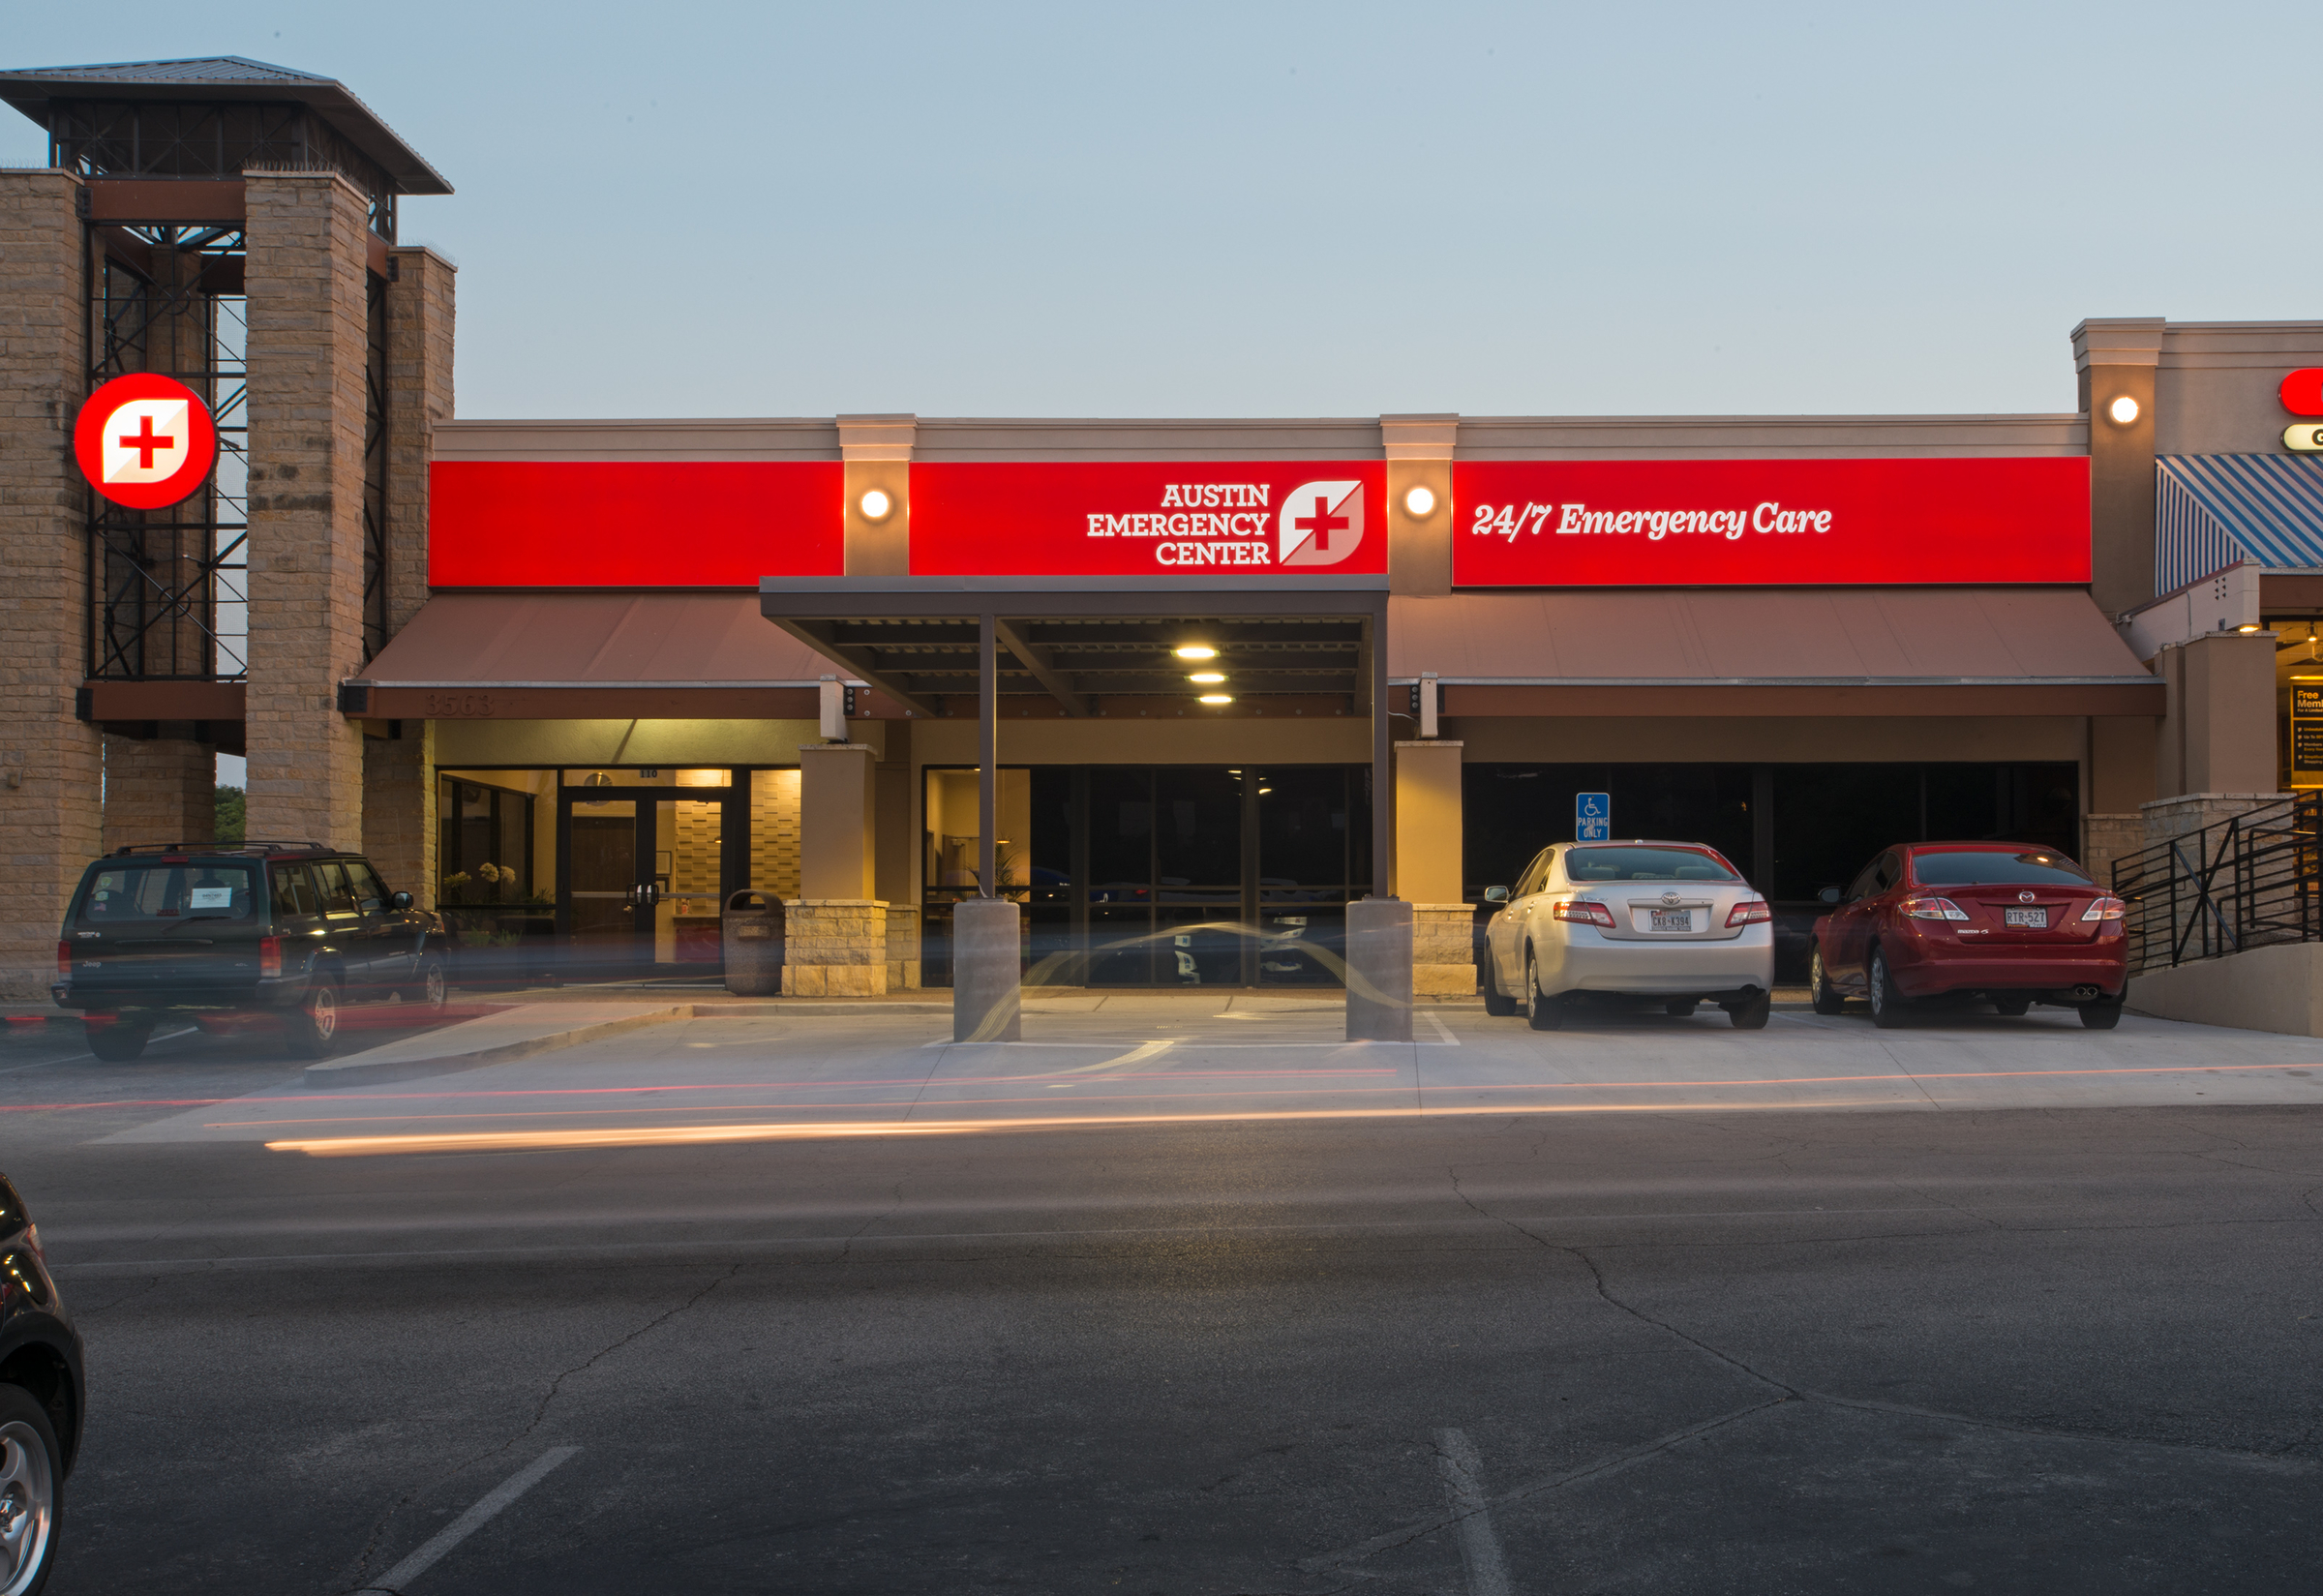 New Emergency Room Project Completed! - Spaces Designed Interior ...